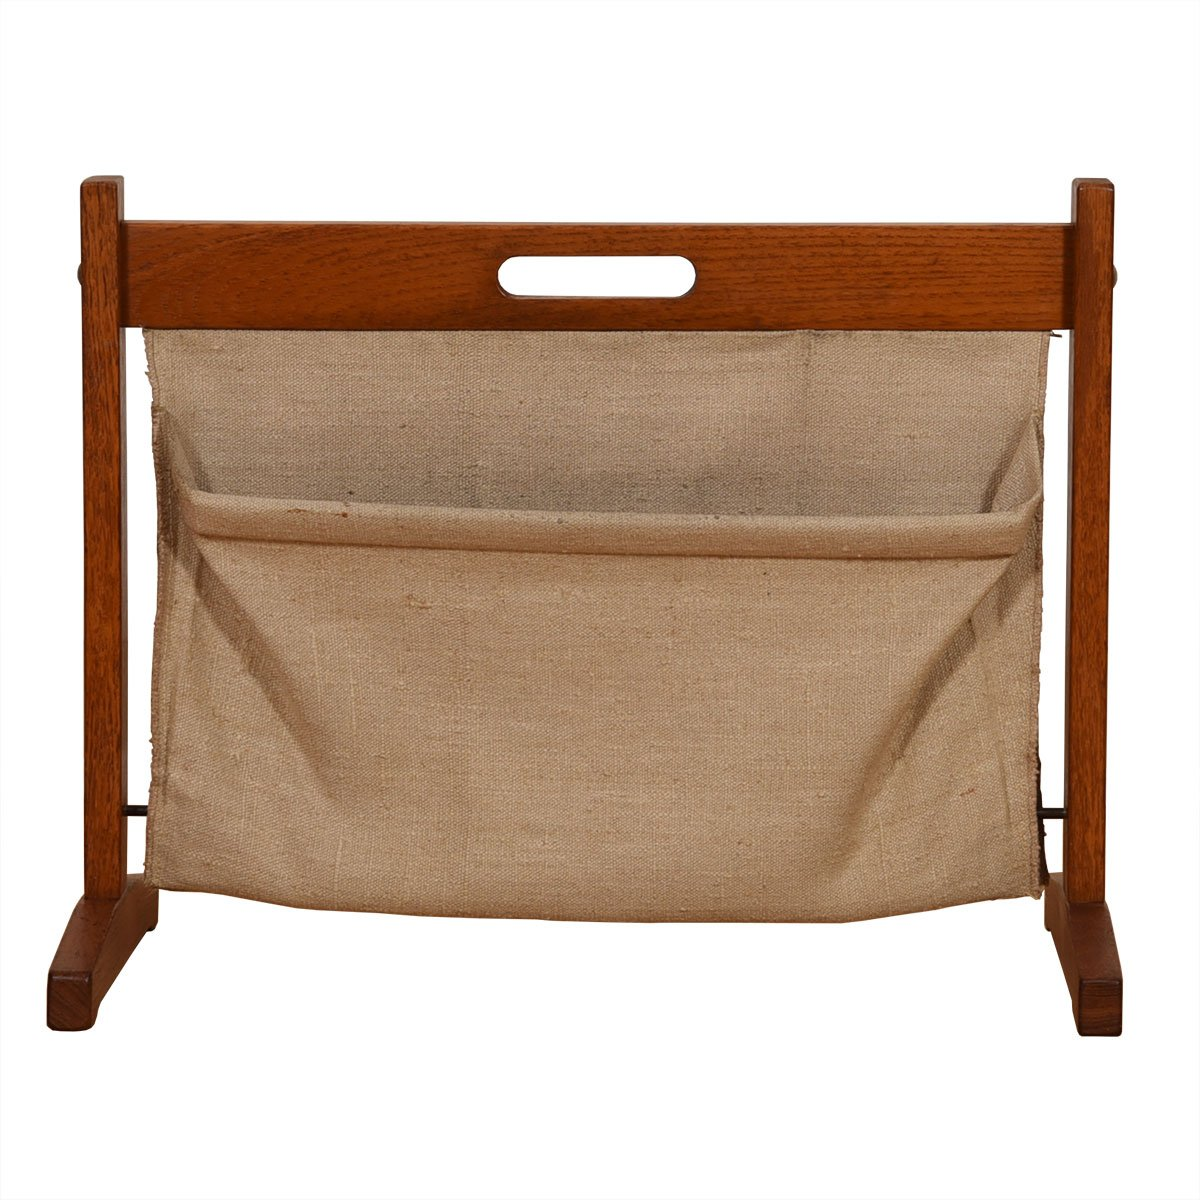 Danish Modern Teak + Canvas Magazine Rack